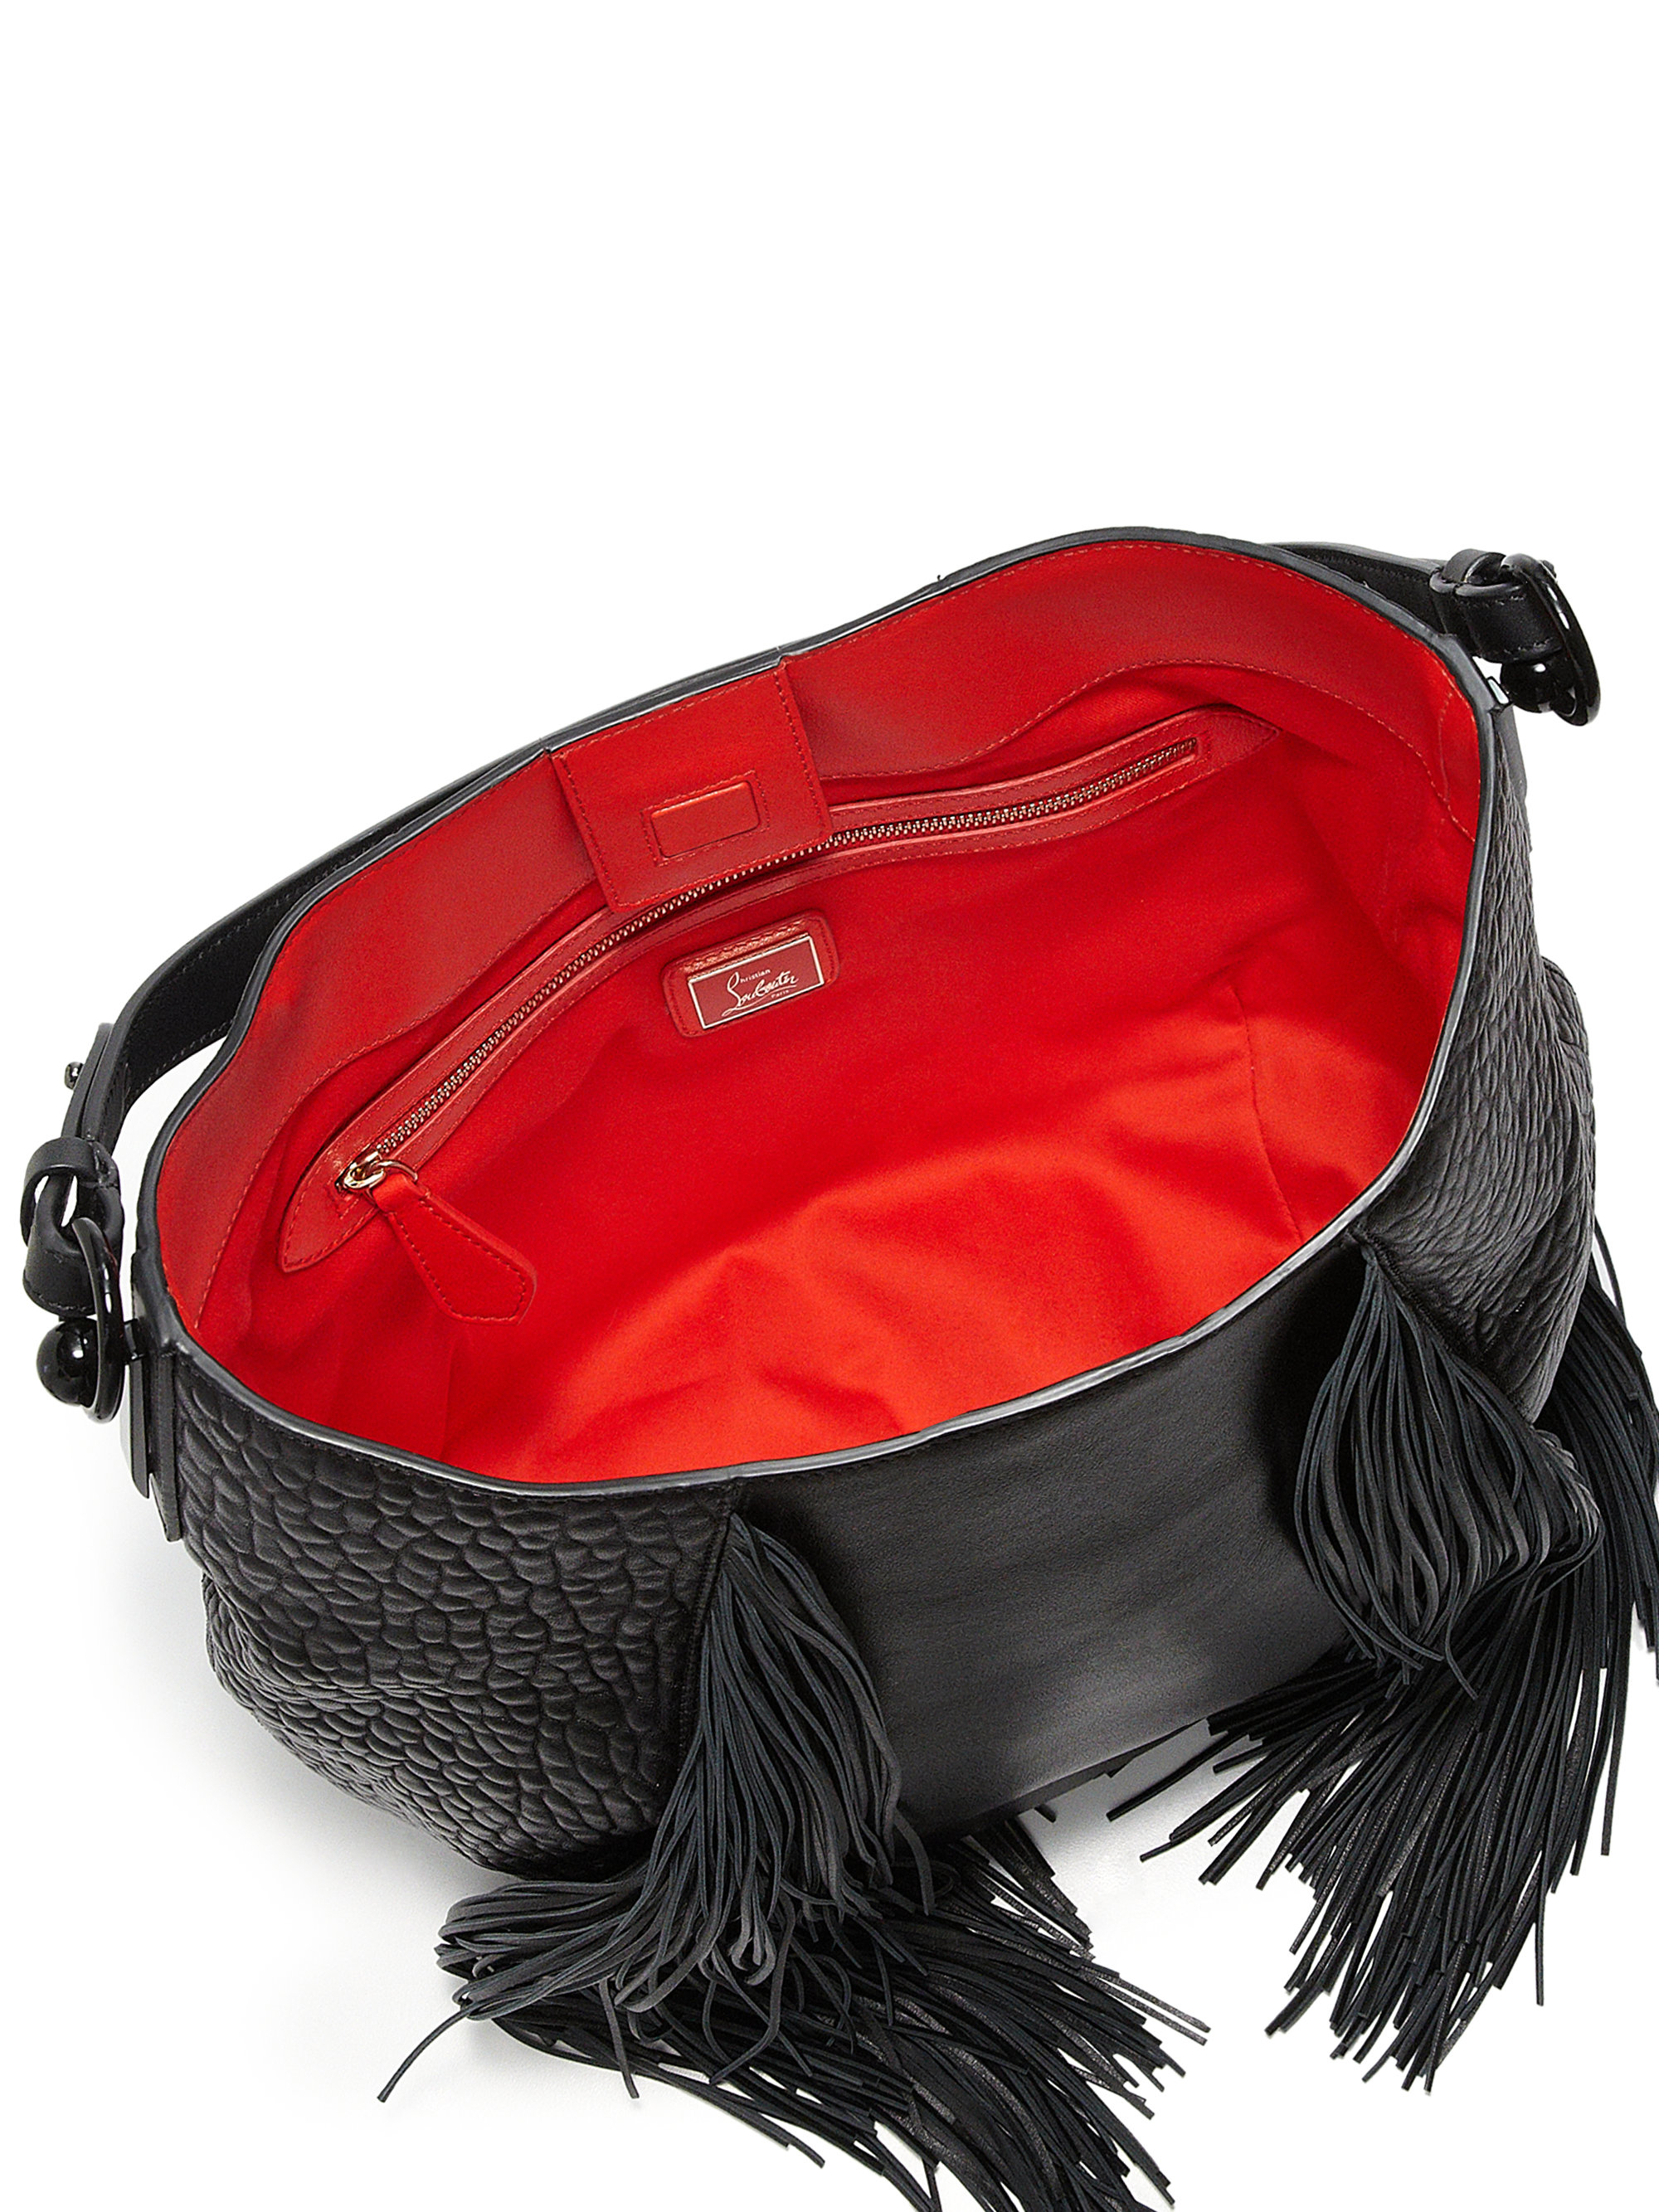 868c6889c4 Gallery. Previously sold at: Saks Fifth Avenue · Women's Fringed Bags